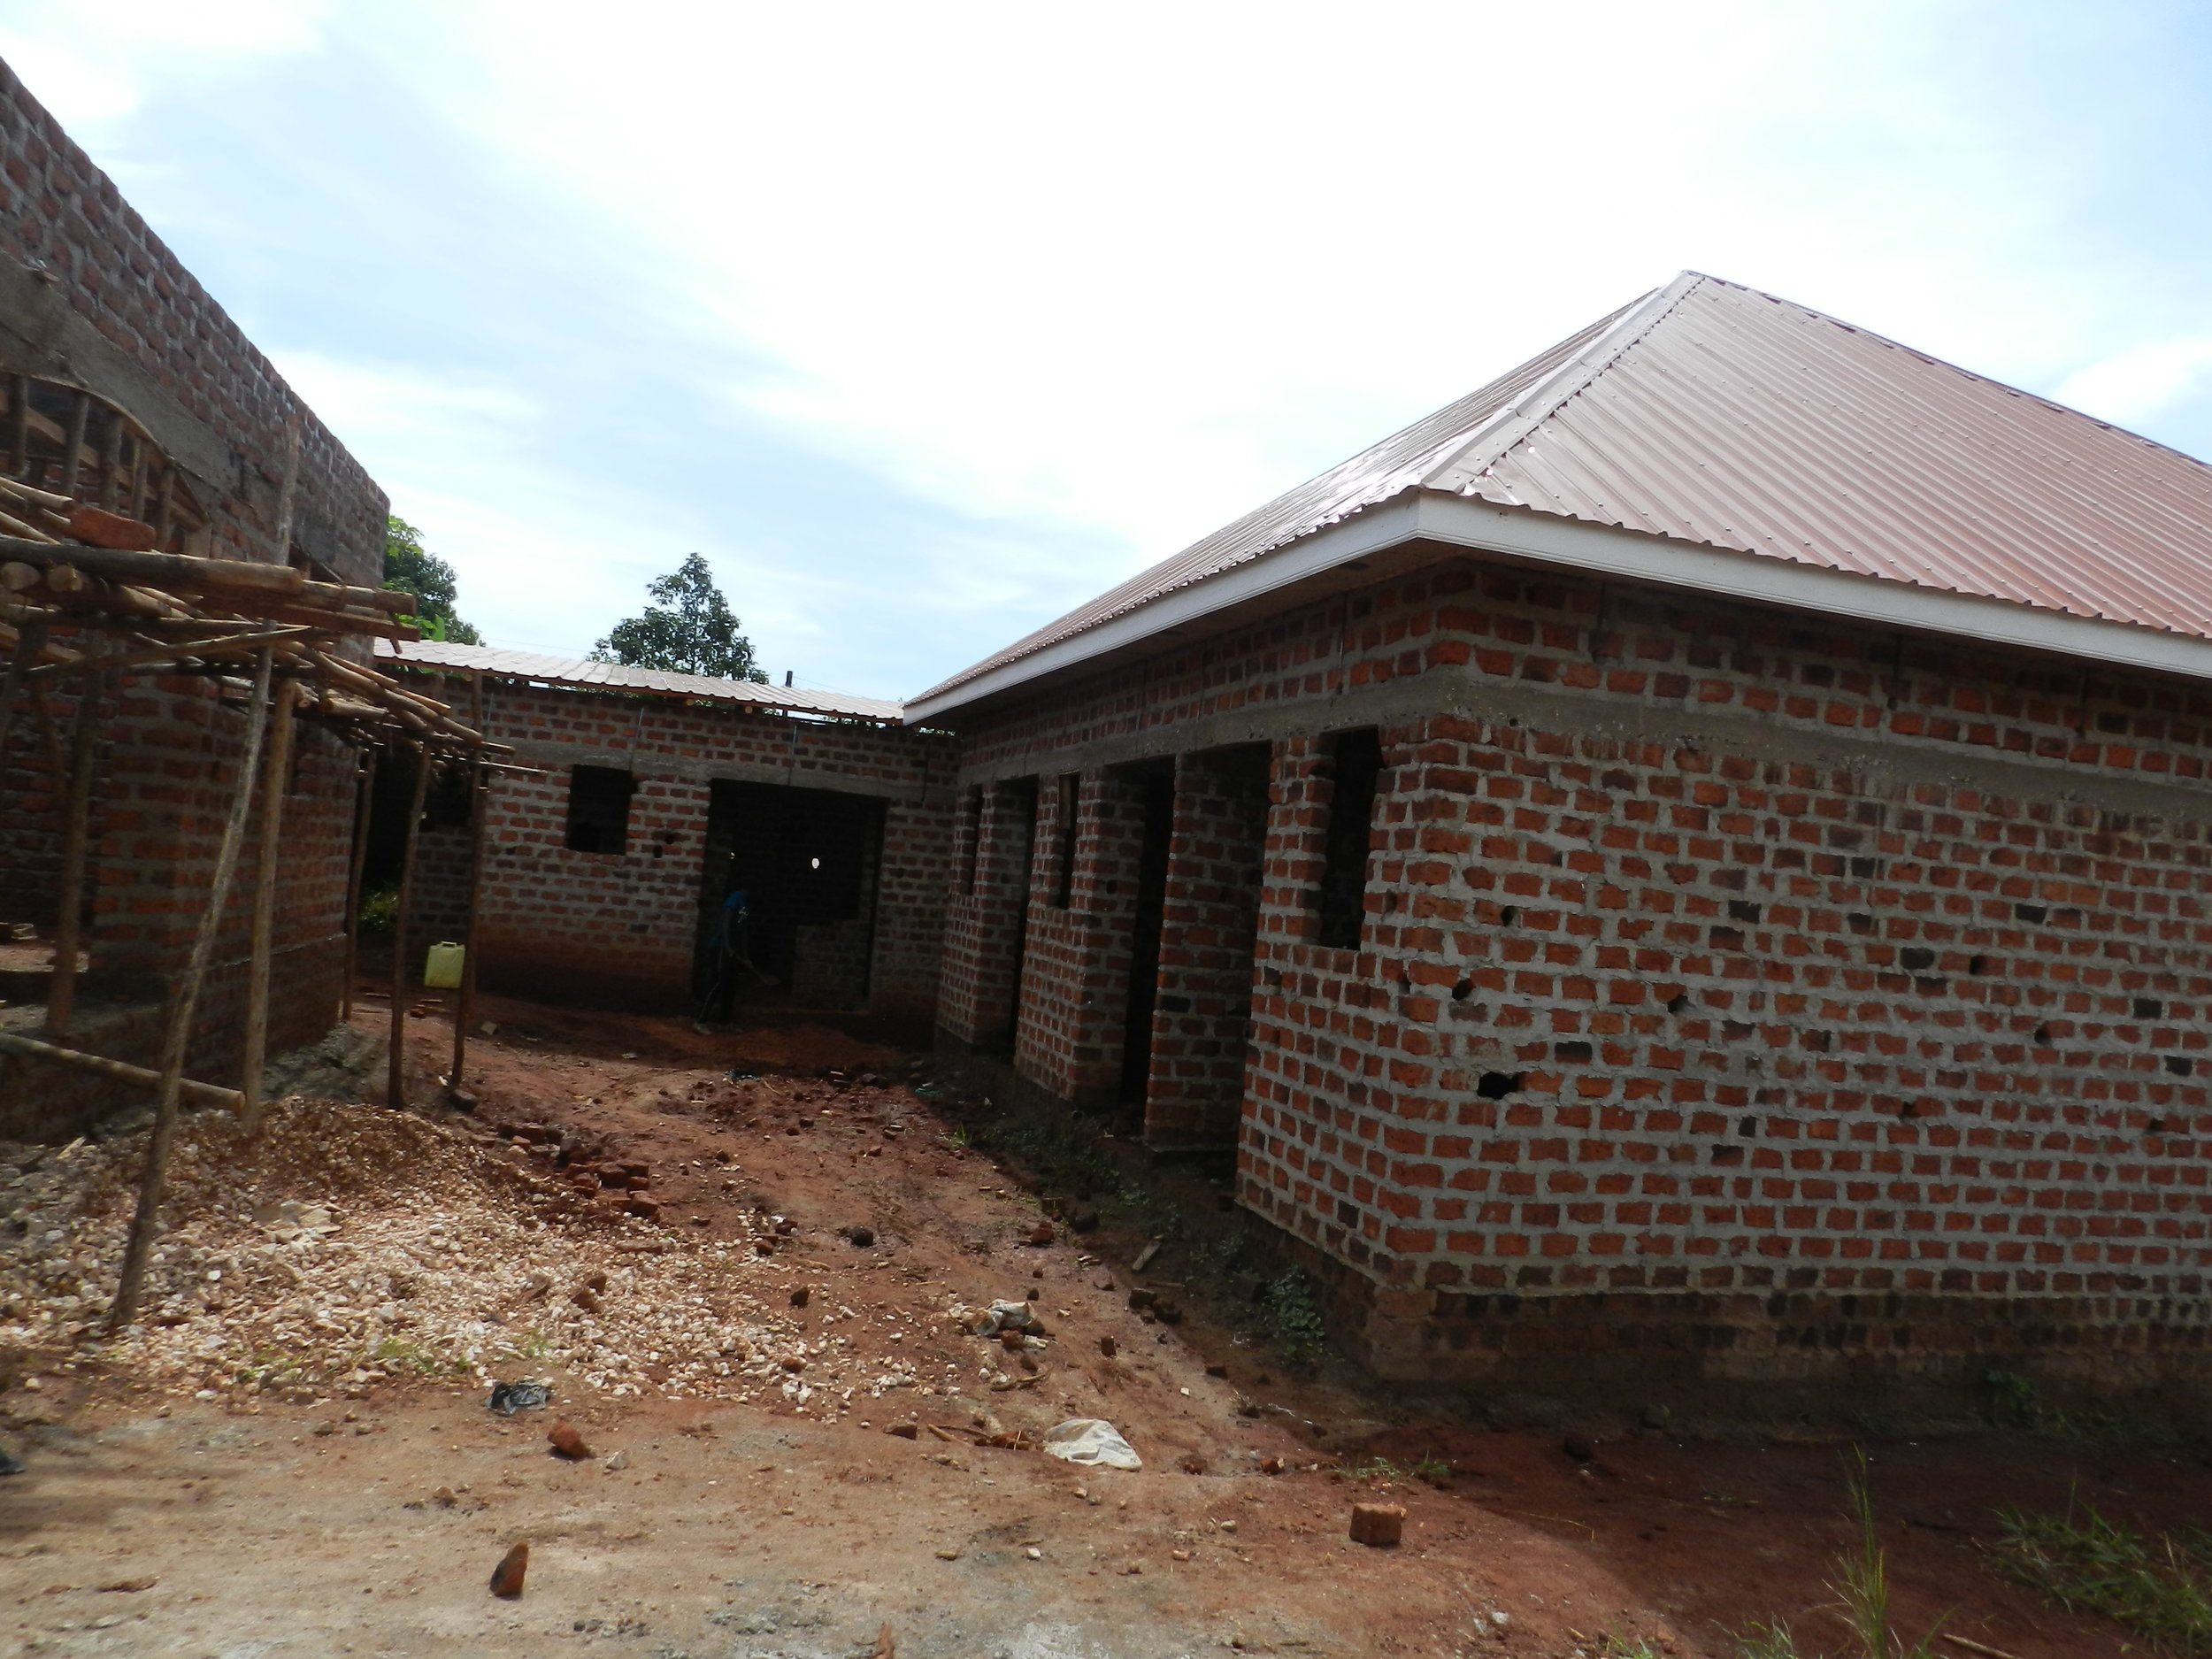 May, 2019. The two housing complexes have been roofed and the training facility has its foundation and walls constructed.